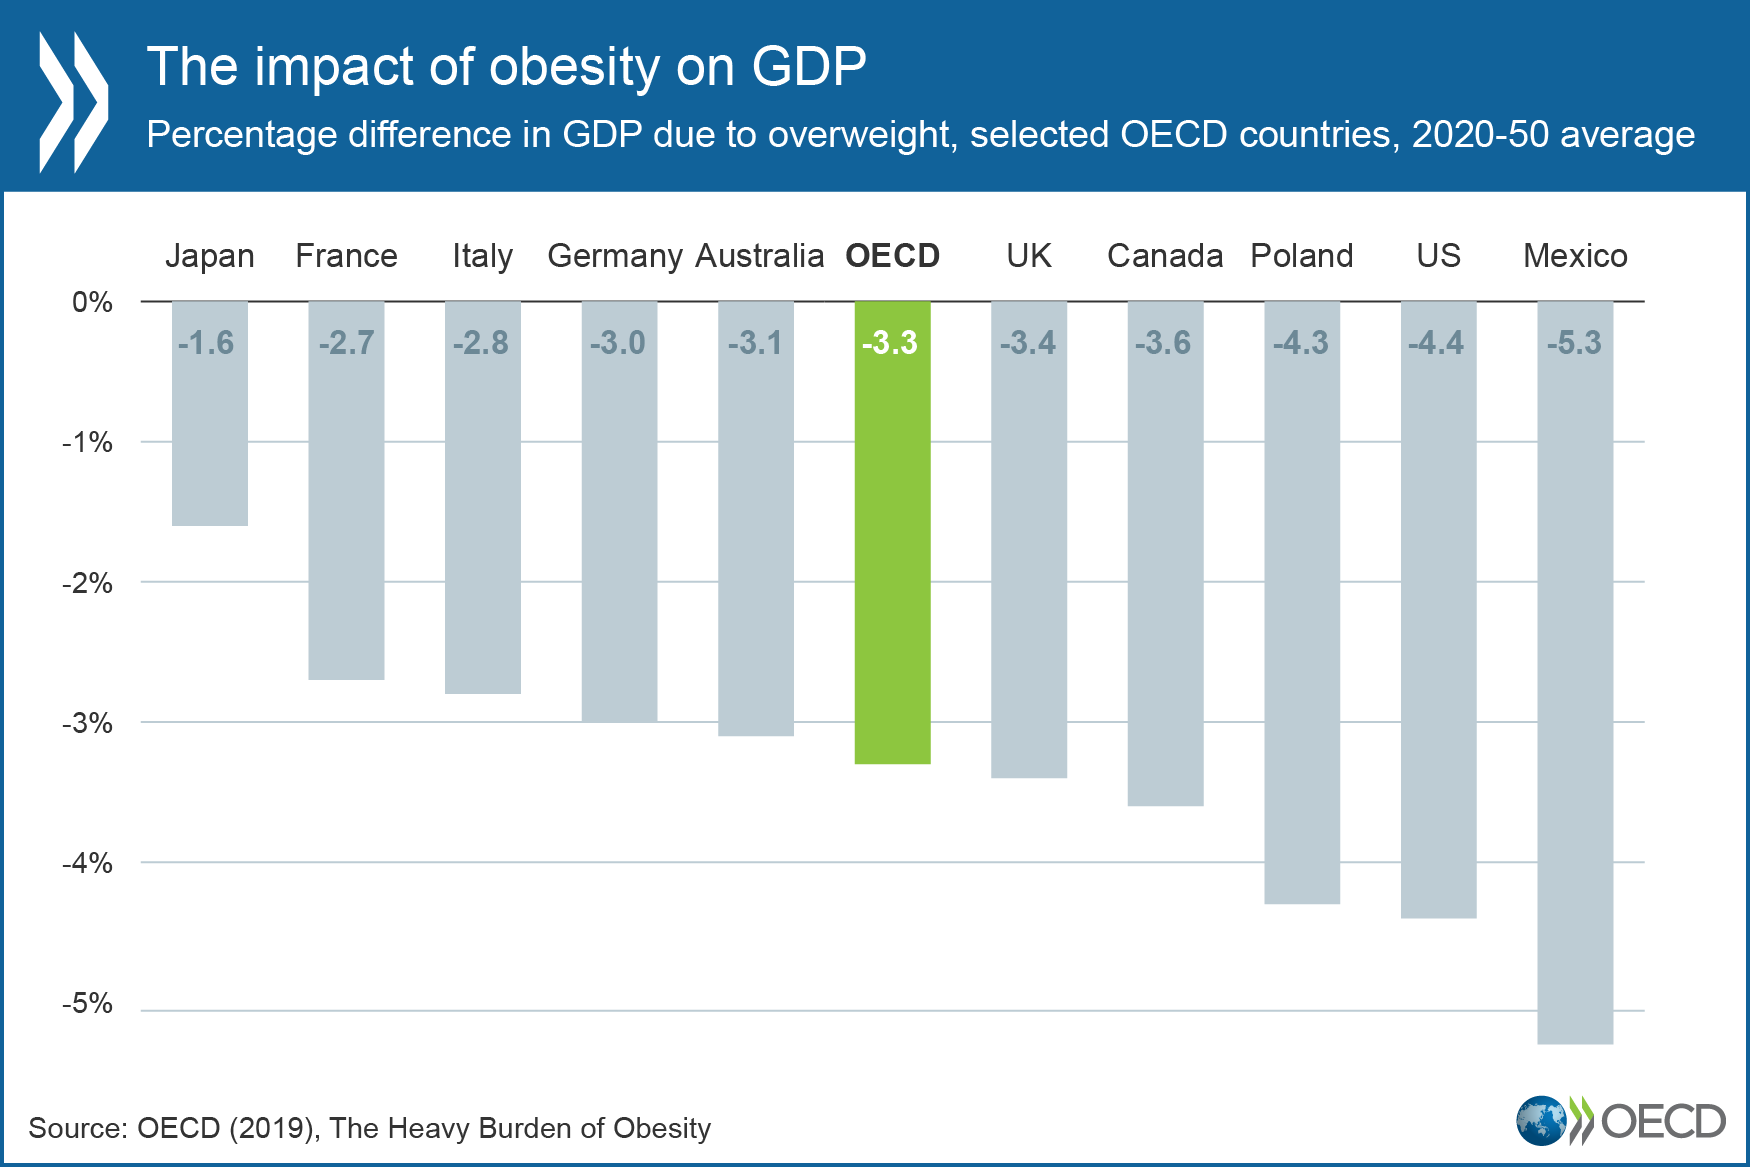 Tackling obesity would boost economic and social well-being